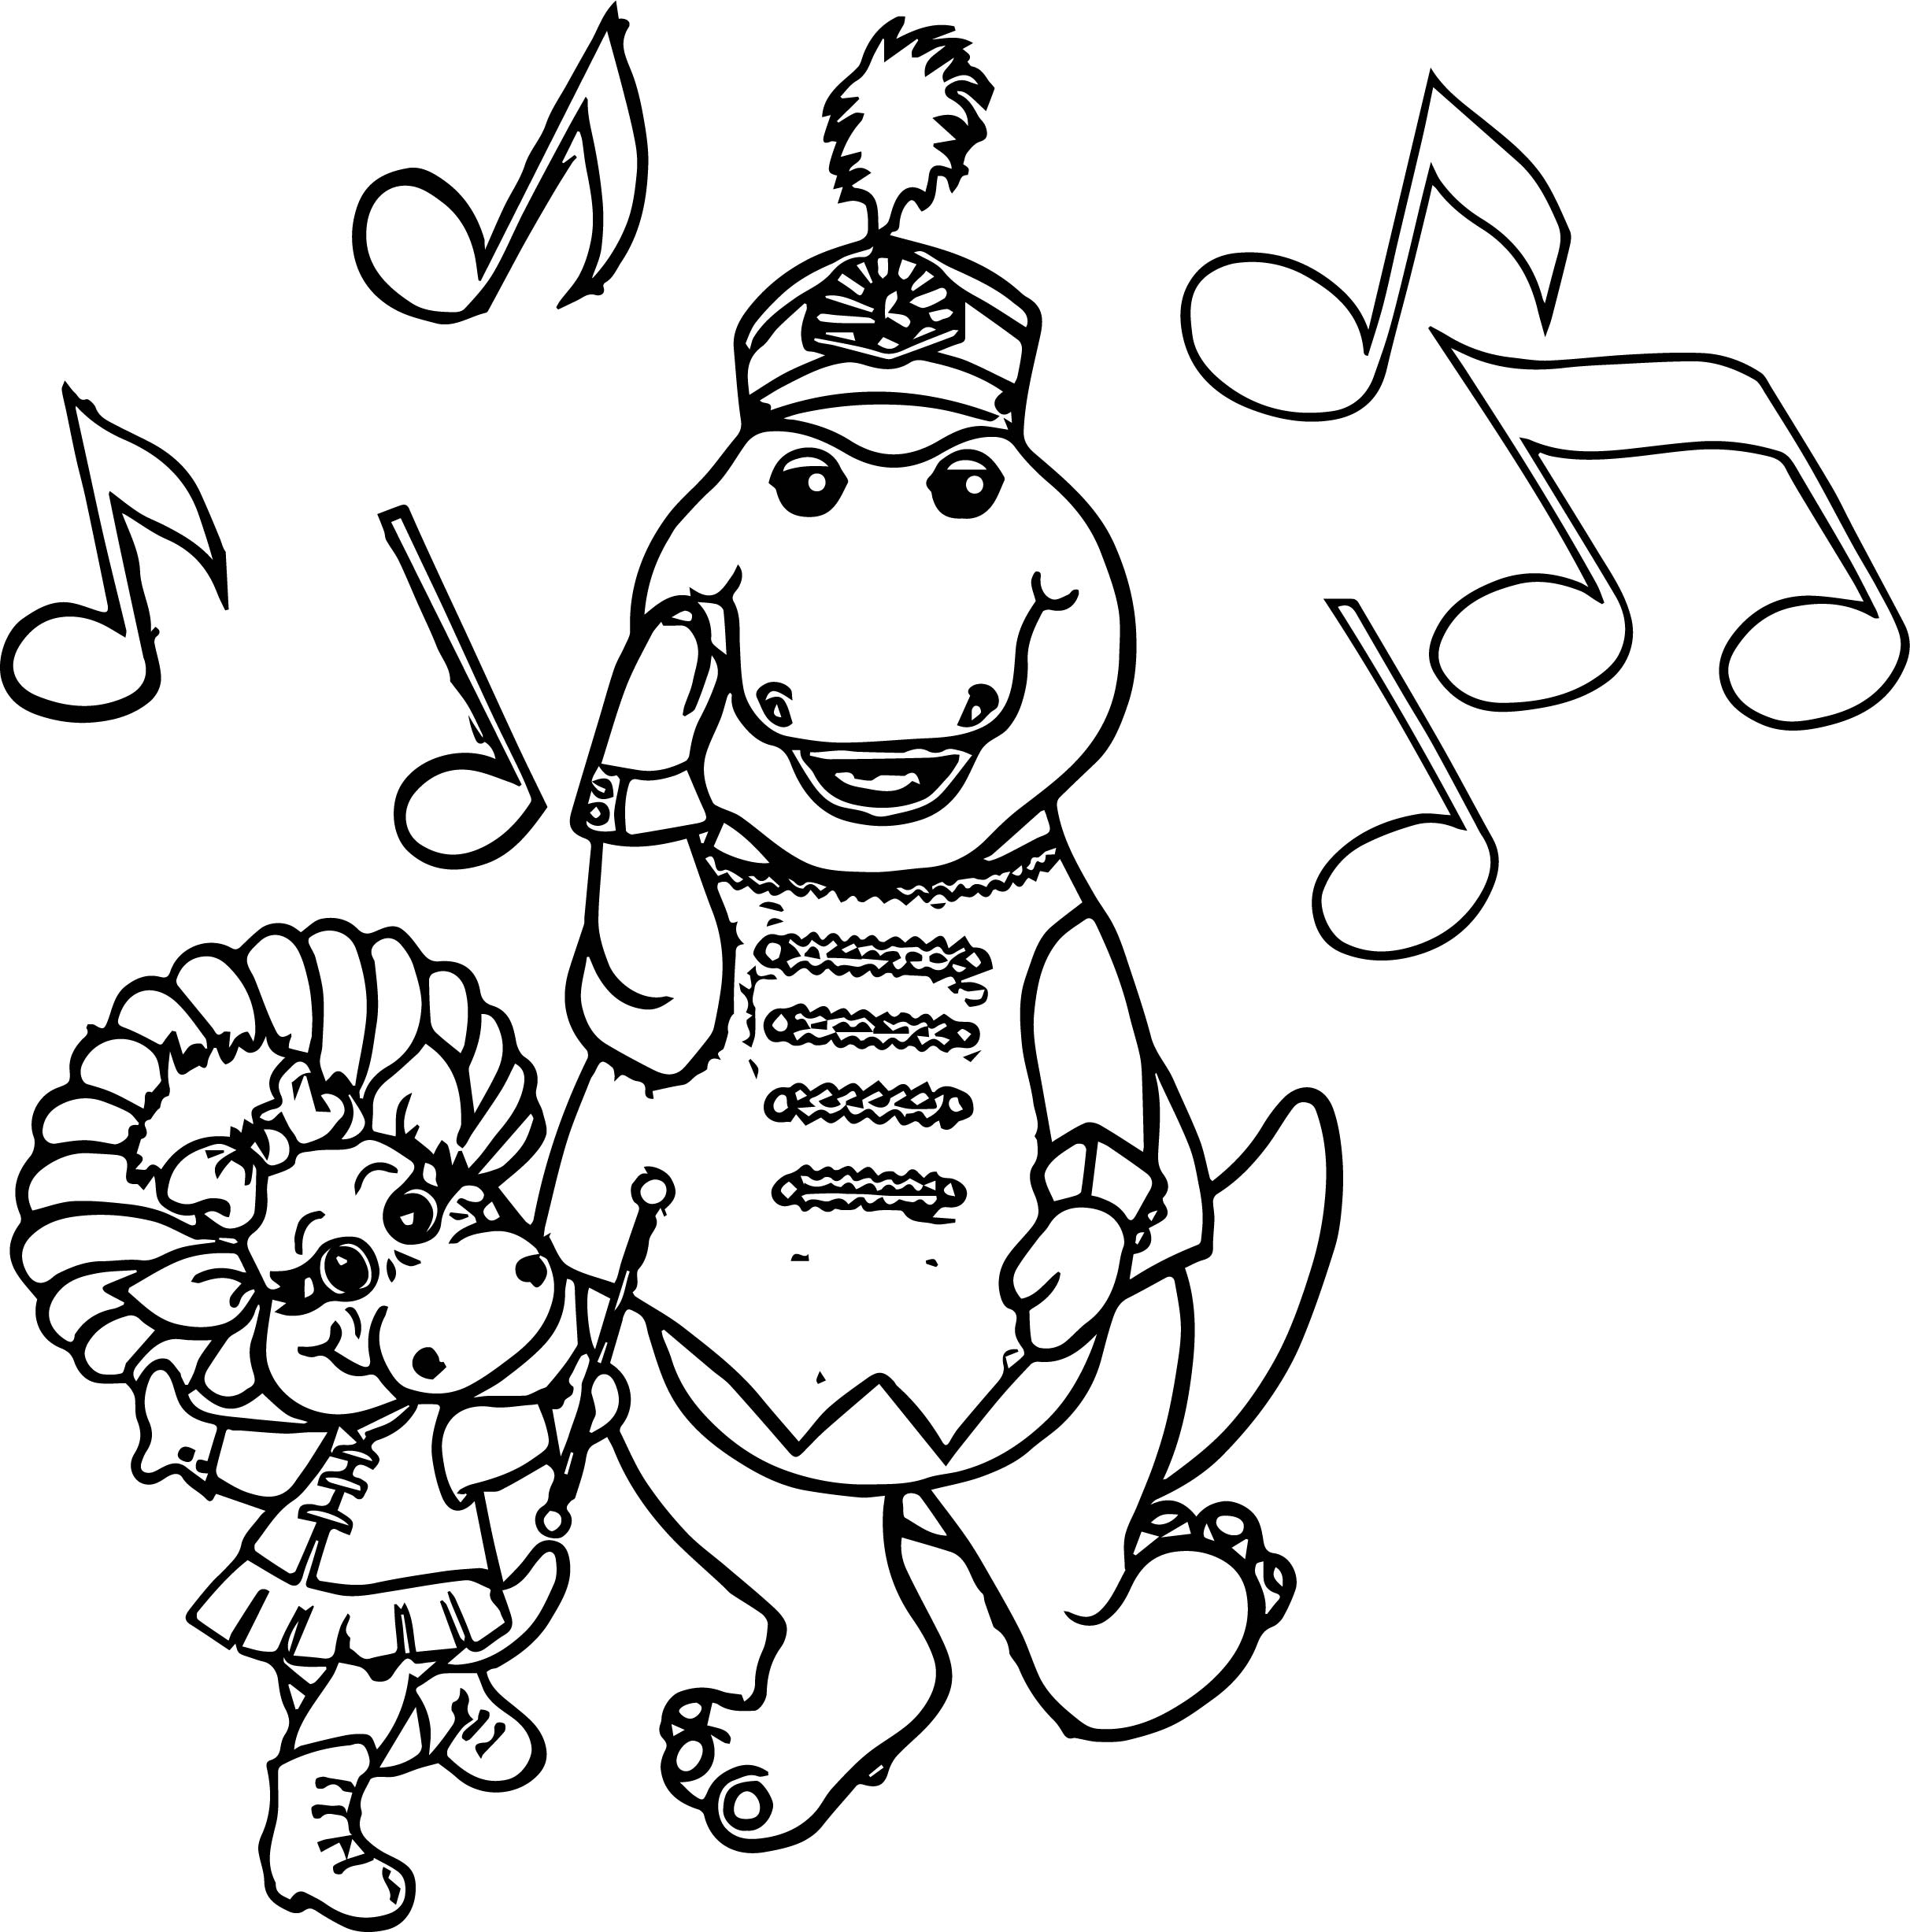 2426x2454 Marvelous Barney Coloring Pages Episode Color Youtube